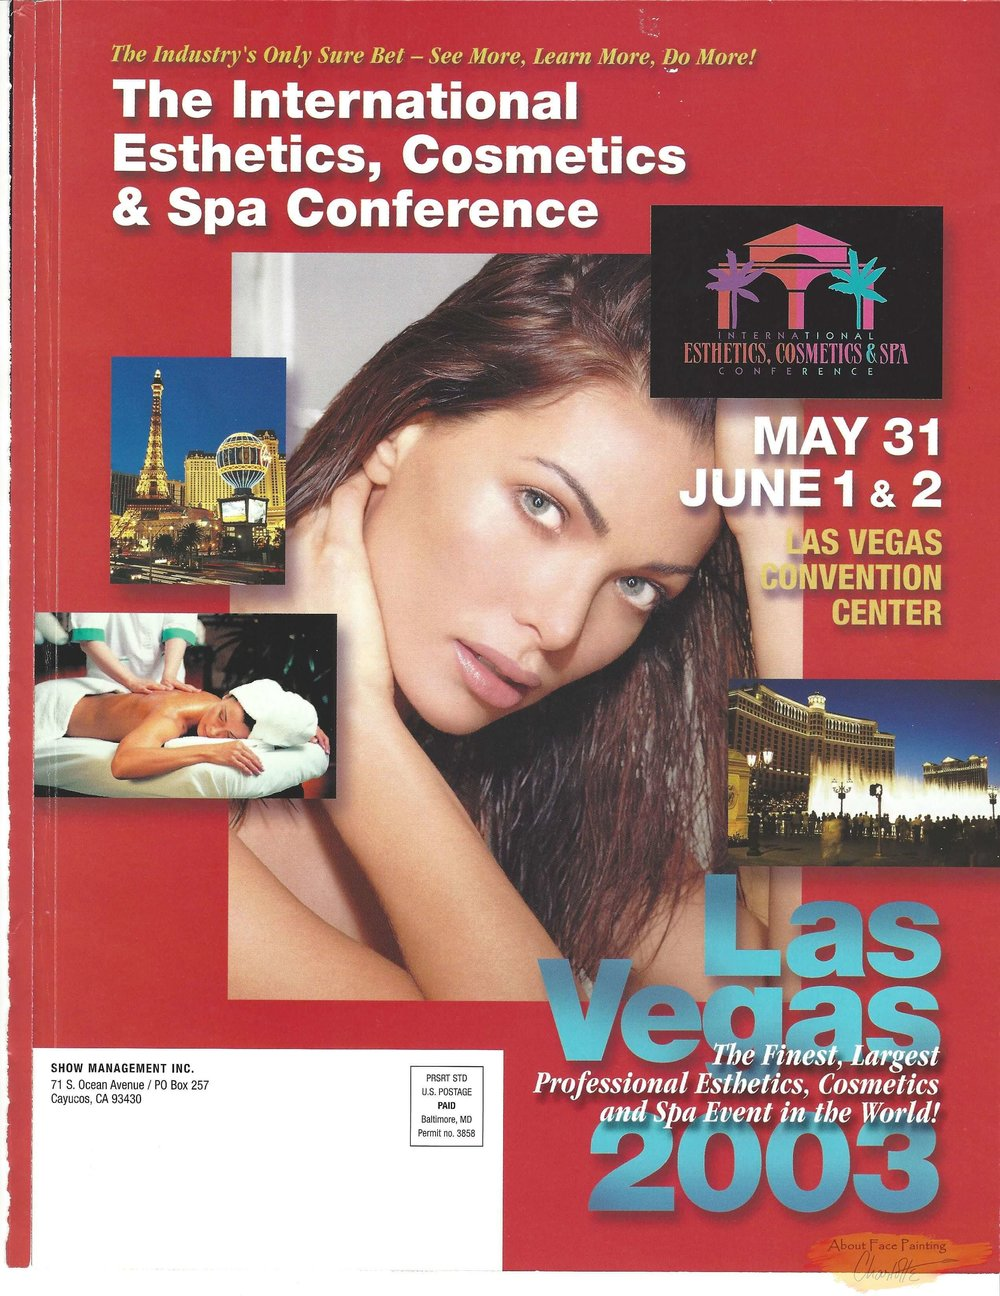 2003 International Esthitics cosmetics and Spa Conference (1).jpg